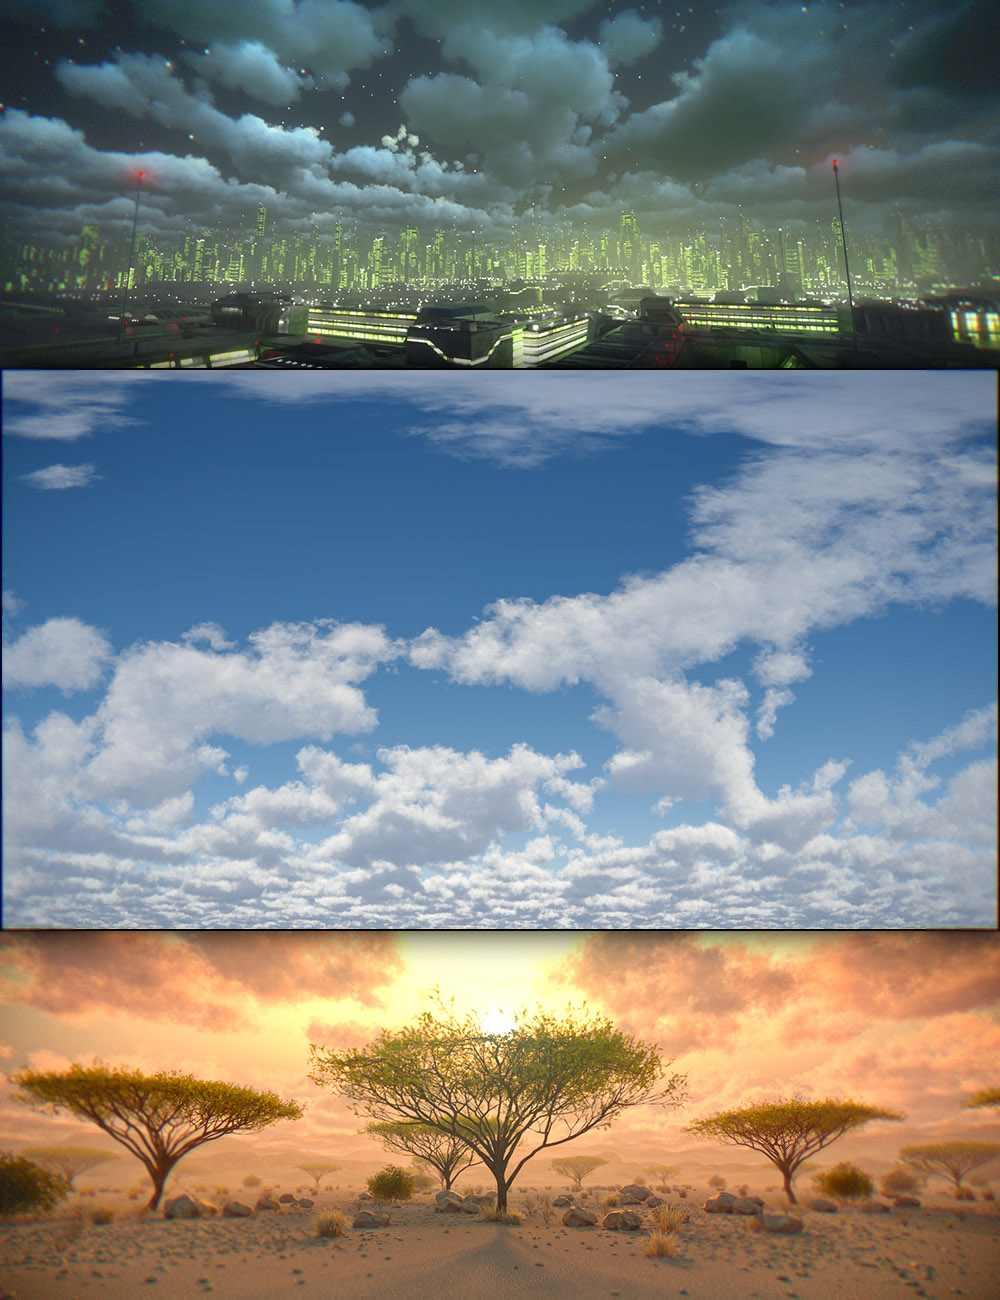 Cloudscape Creator - Sky Cover for Iray by: DimensionTheory, 3D Models by Daz 3D